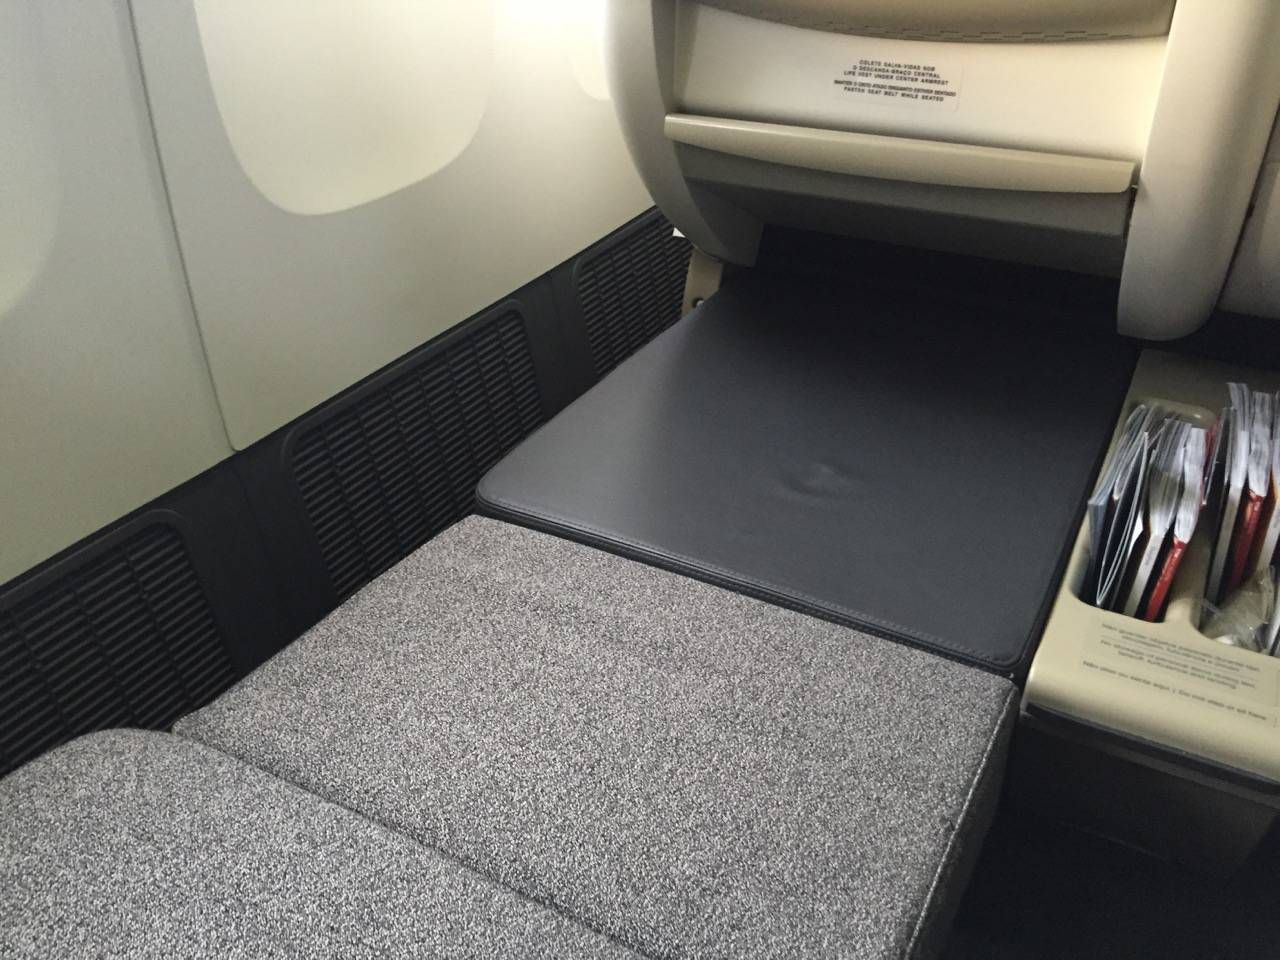 TAM B777 Executiva Business Class-023